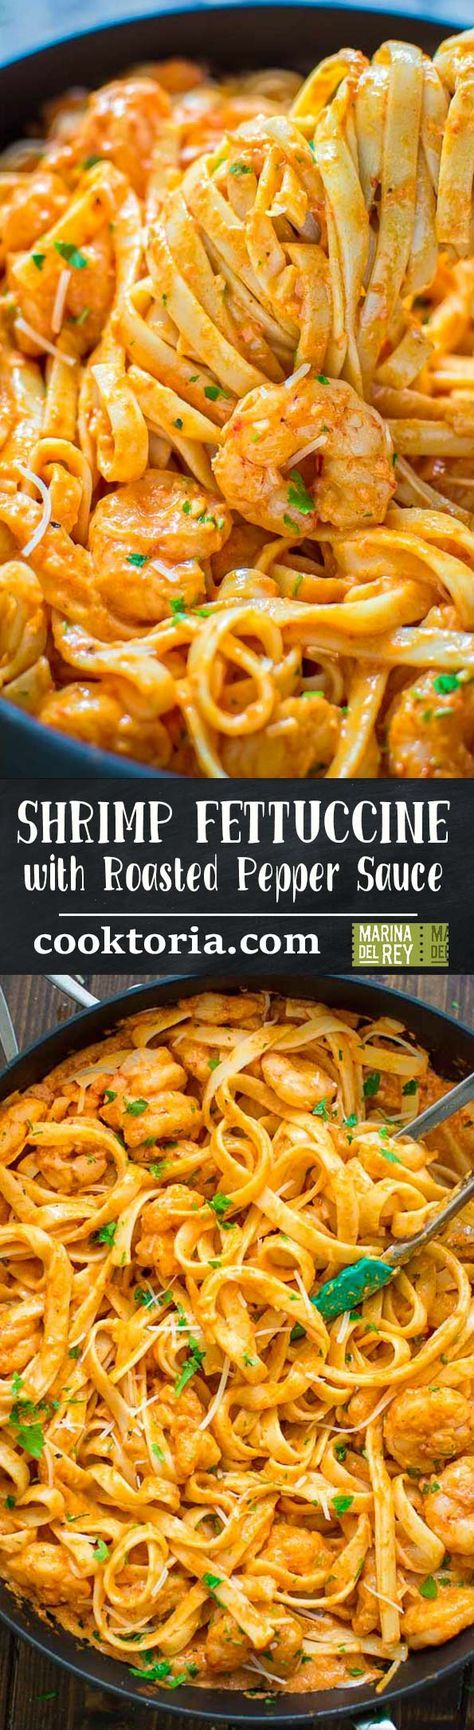 Rich and creamy, hearty and so flavorful, this Shrimp Fettuccine with Roasted Pepper Sauce tastes better than a restaurant-cooked meal. Made in under 30 minutes! ❤ COOKTORIA.COM #ad #MarinaDelRayFoods #shrimp #eatwild #pureseafood